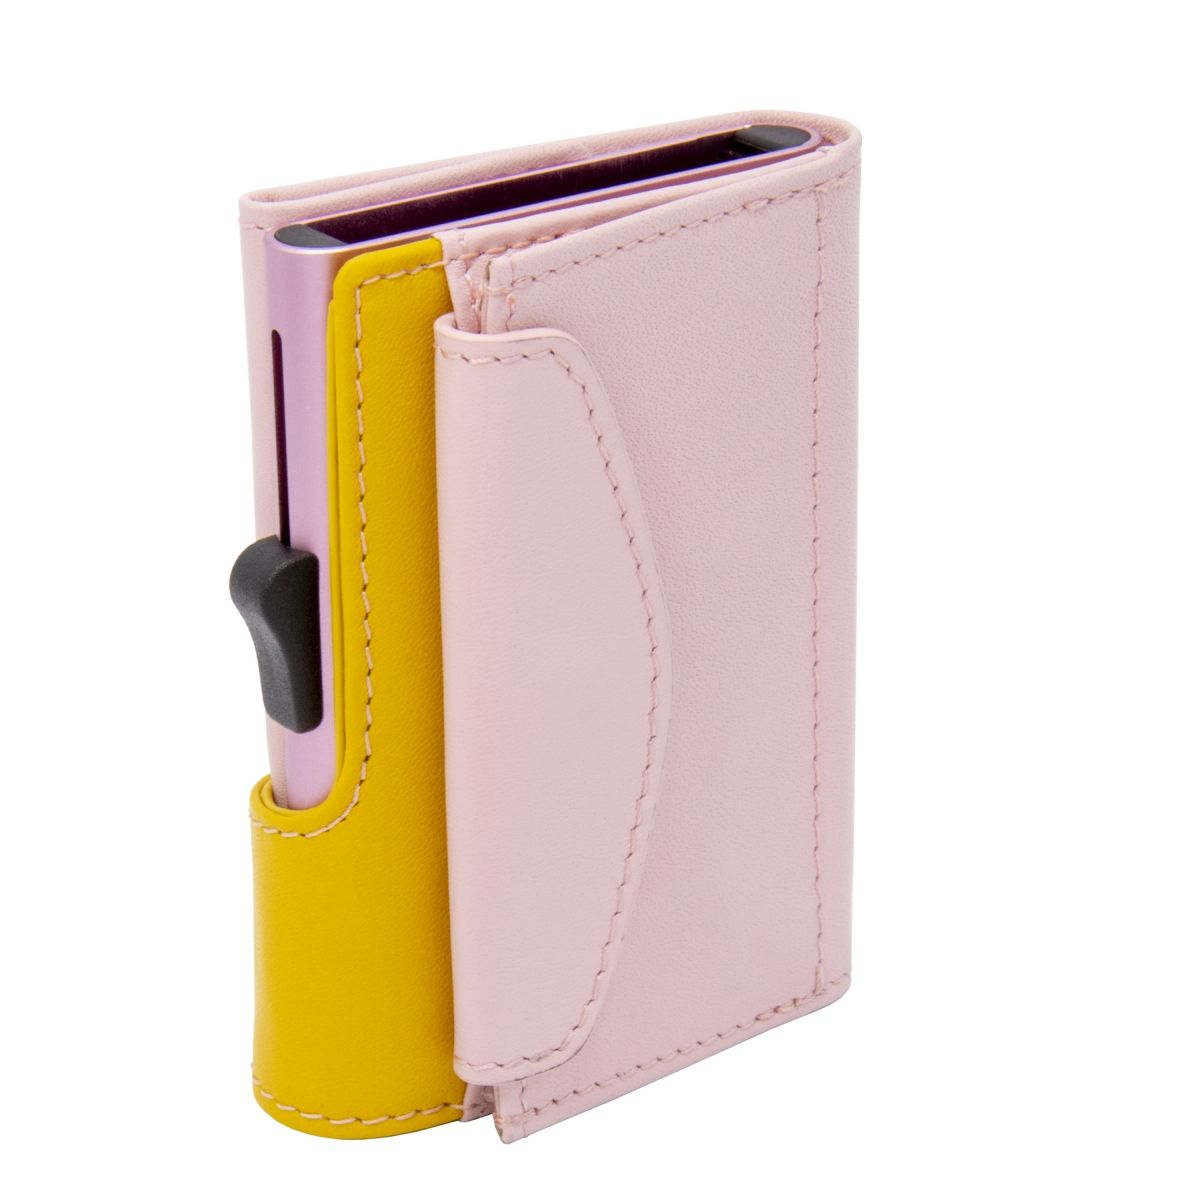 XL Aluminum Wallet with Genuine Leather and Coins Pocket - Blush/Saffron